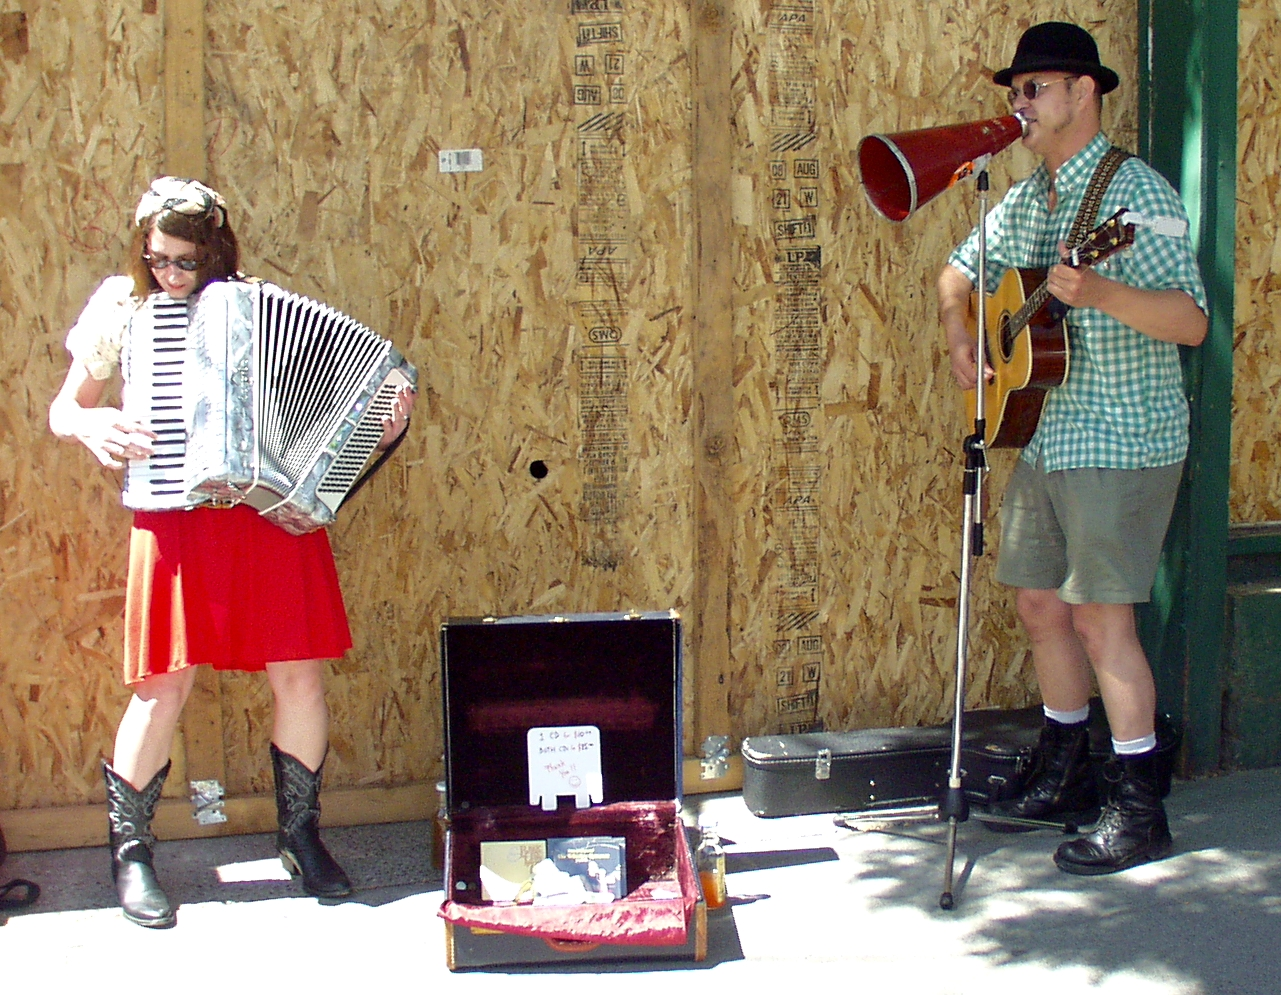 Erin Jordan and Robert Rial performing at the Ballard Farmers Market on July 19, 2009. Photo copyright 2009 by Zachary D. Lyons.